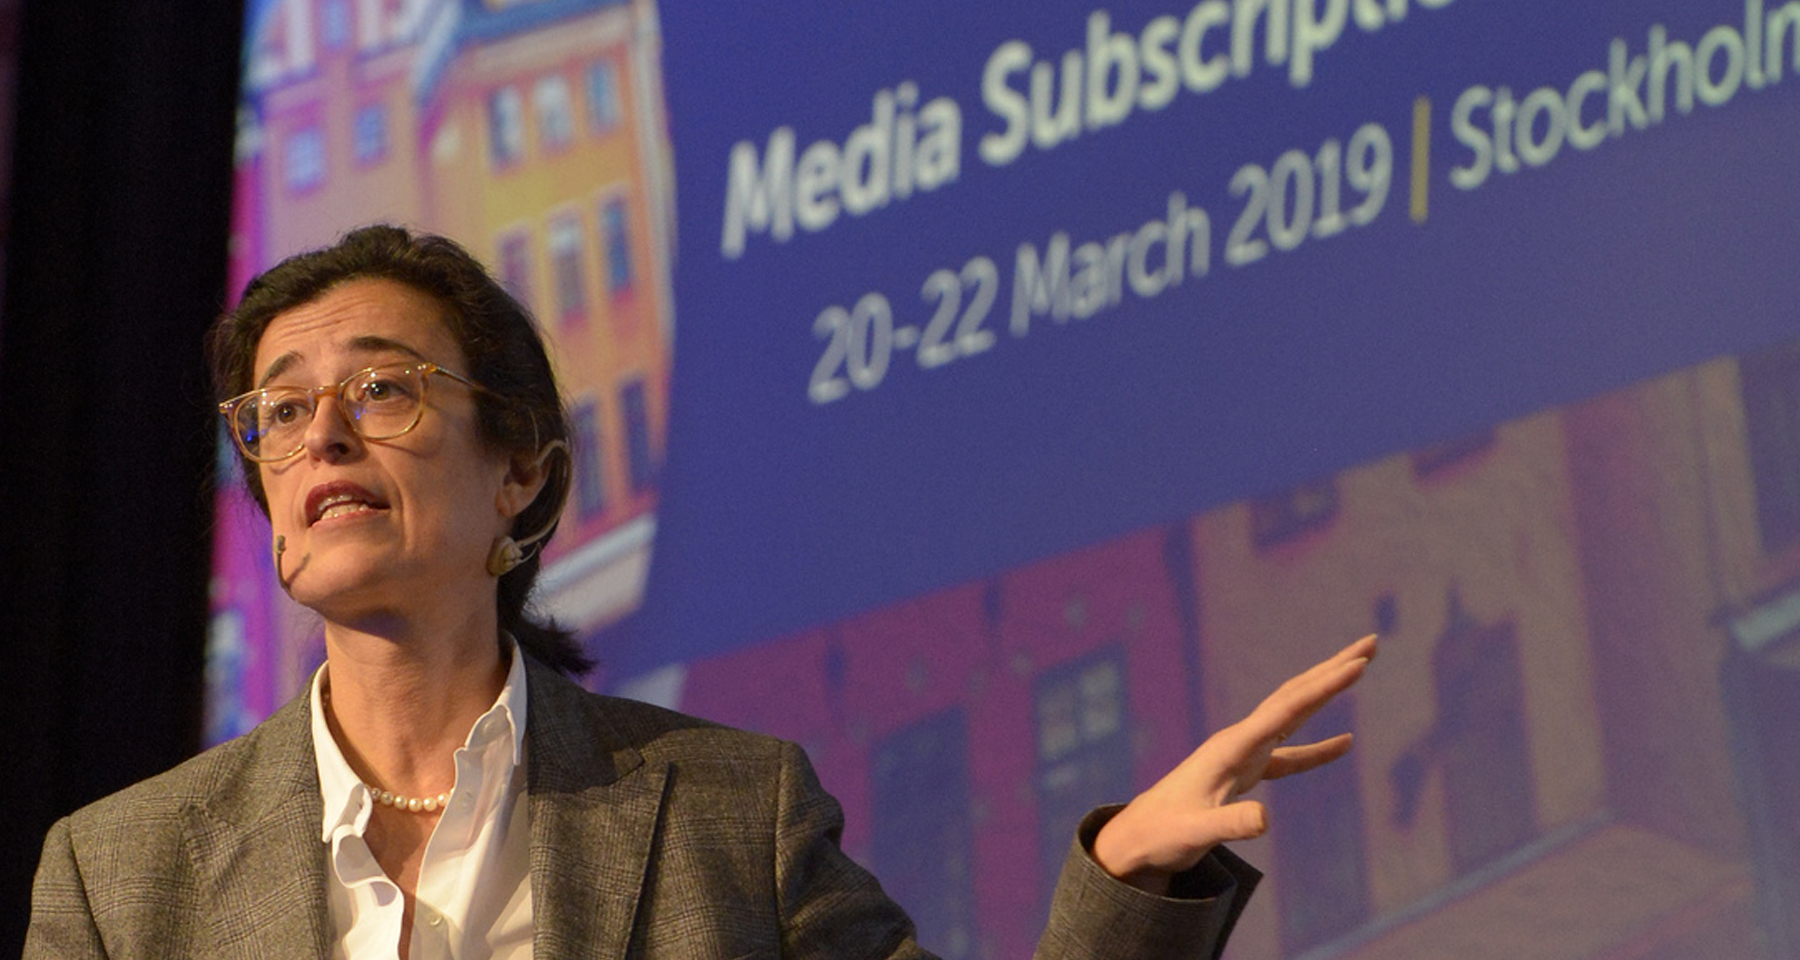 FT, Politico create new content-driven products, reach new readers